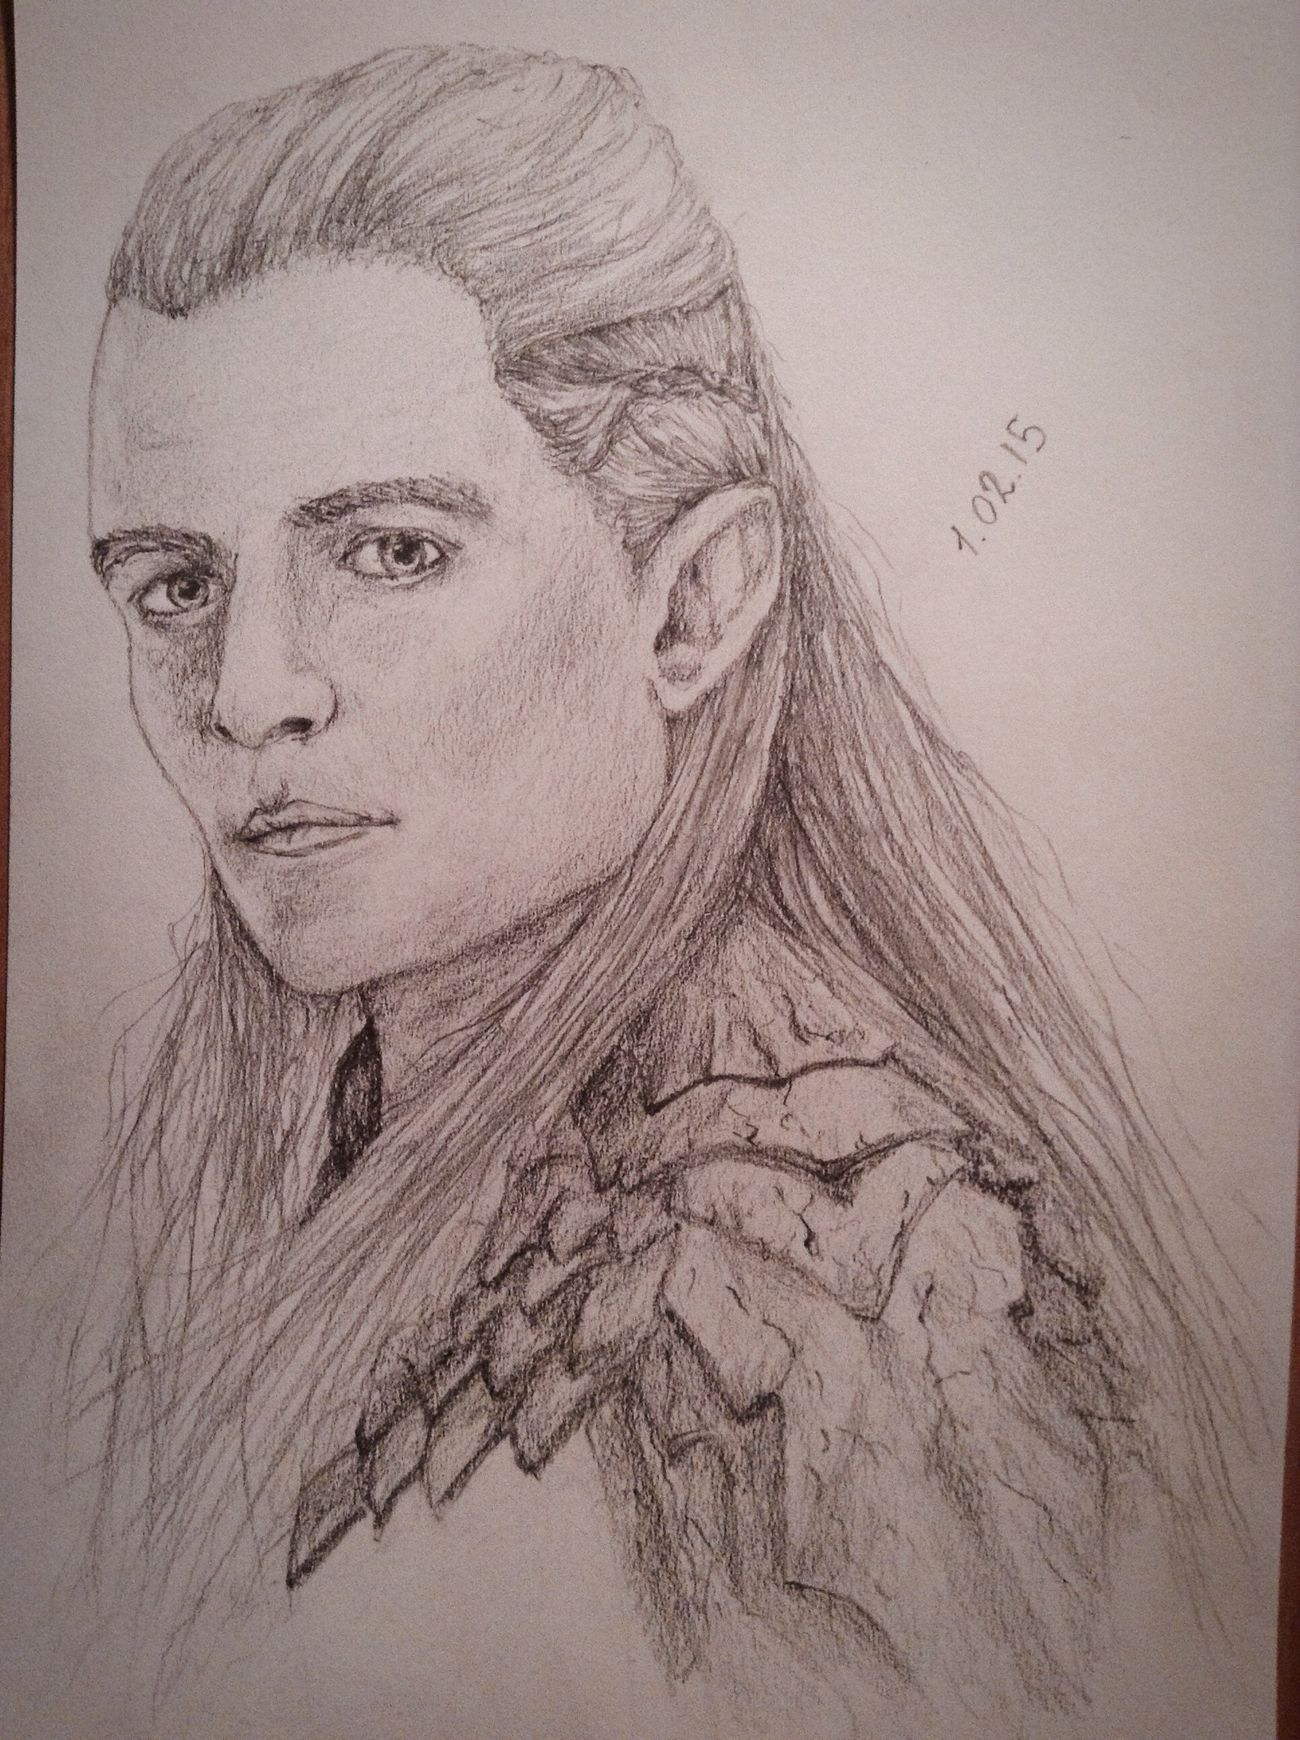 ?Just new pirtrait?✏️. Cute Pencil Drawing Portrait Drawing Art Fanart Legolas Hobbit Exciting, Orlandobloom